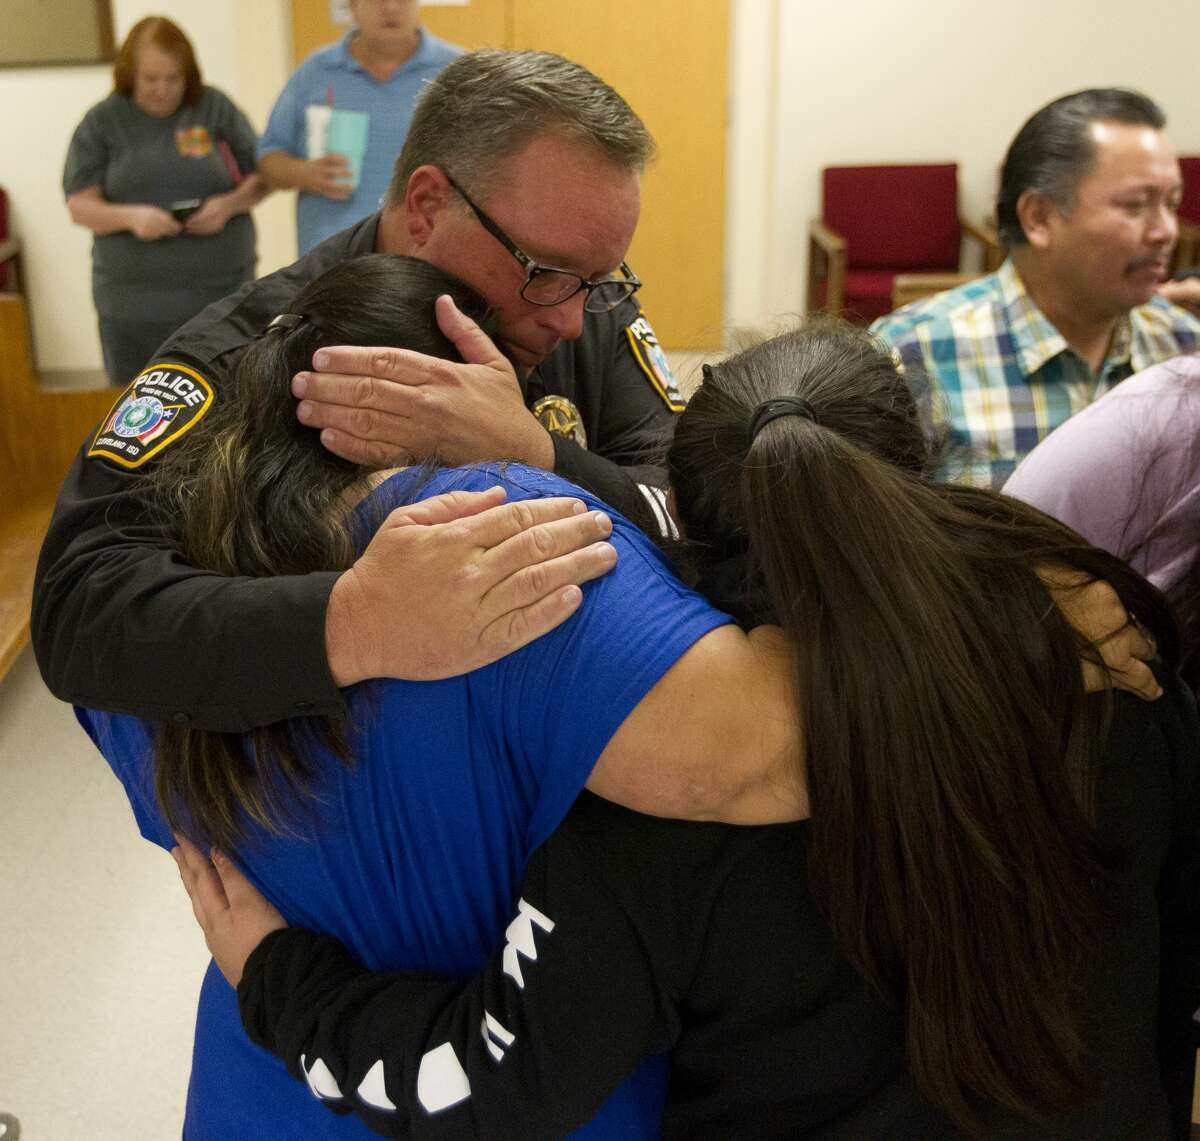 Cleveland ISD Police Chief Rex Evans hugs the family of 11-year-old Adan Hilario, Jr. after Kingwood's Garrett Nee was sentenced to 15 years for the 2016 death of Hilario, Jr. and Patton Village Police Sgt. Stacey Baumgartner in a Father's Day crash that followed a police chase.